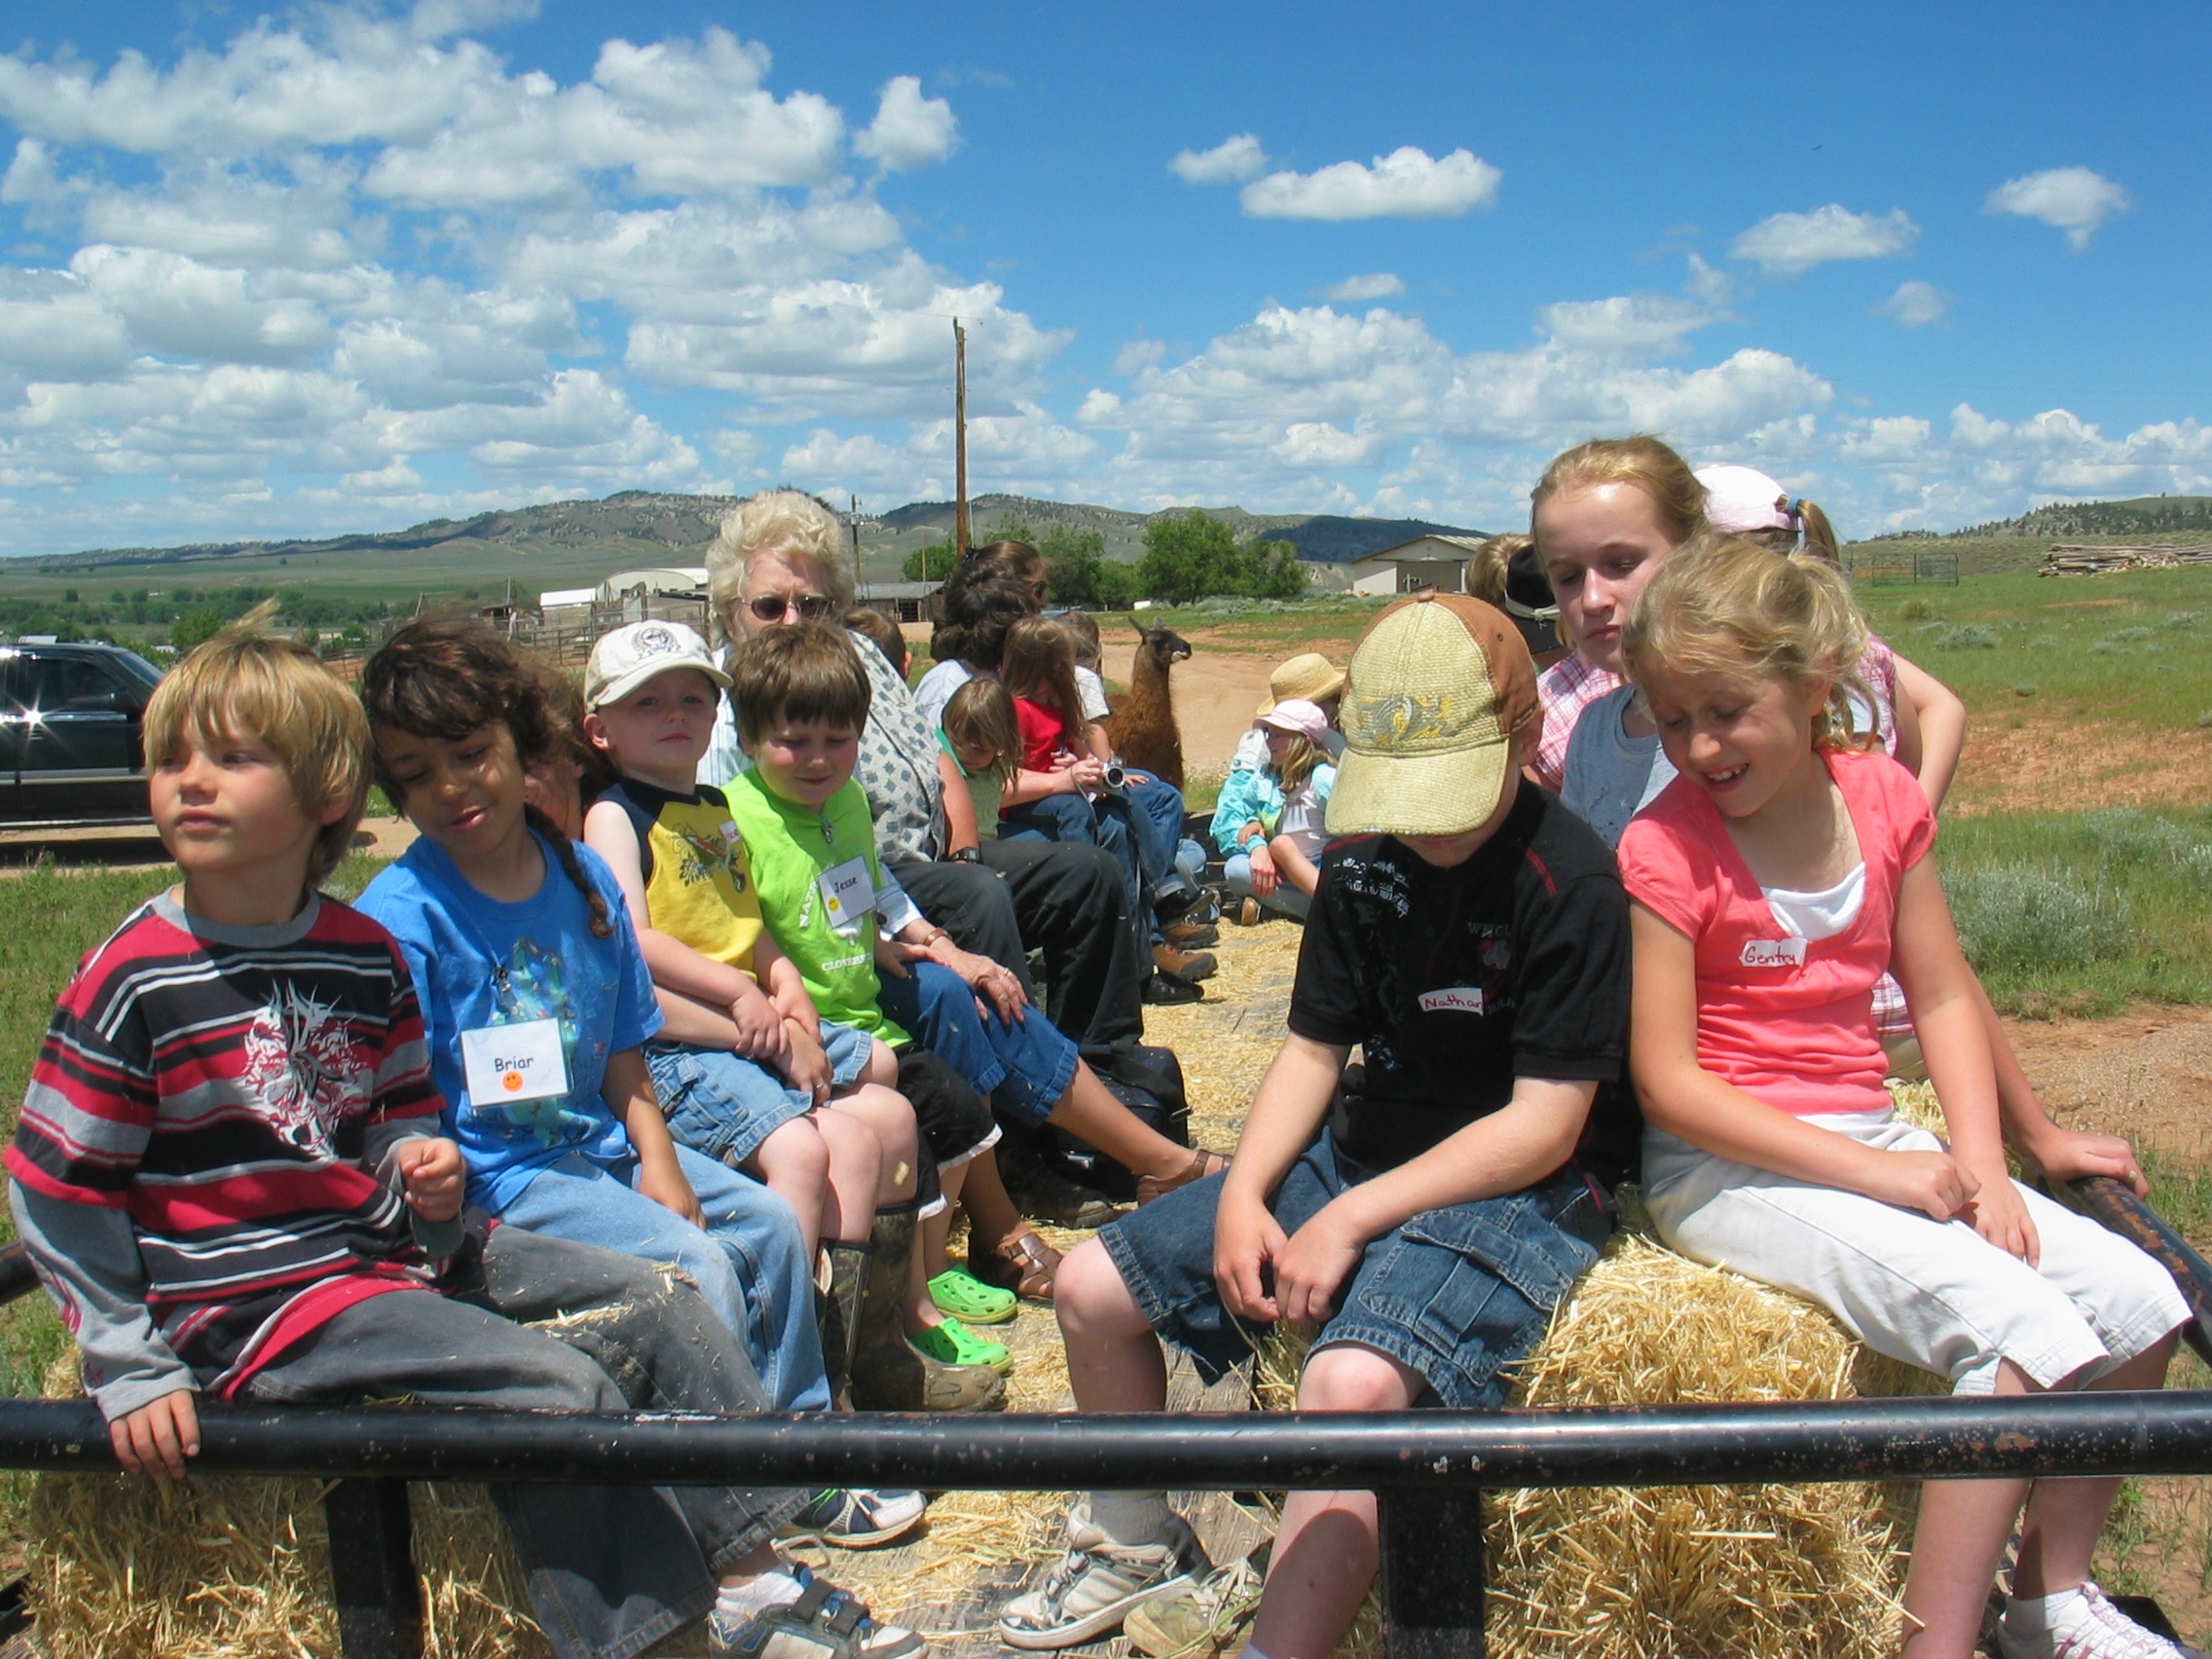 A group of children on hay bales.